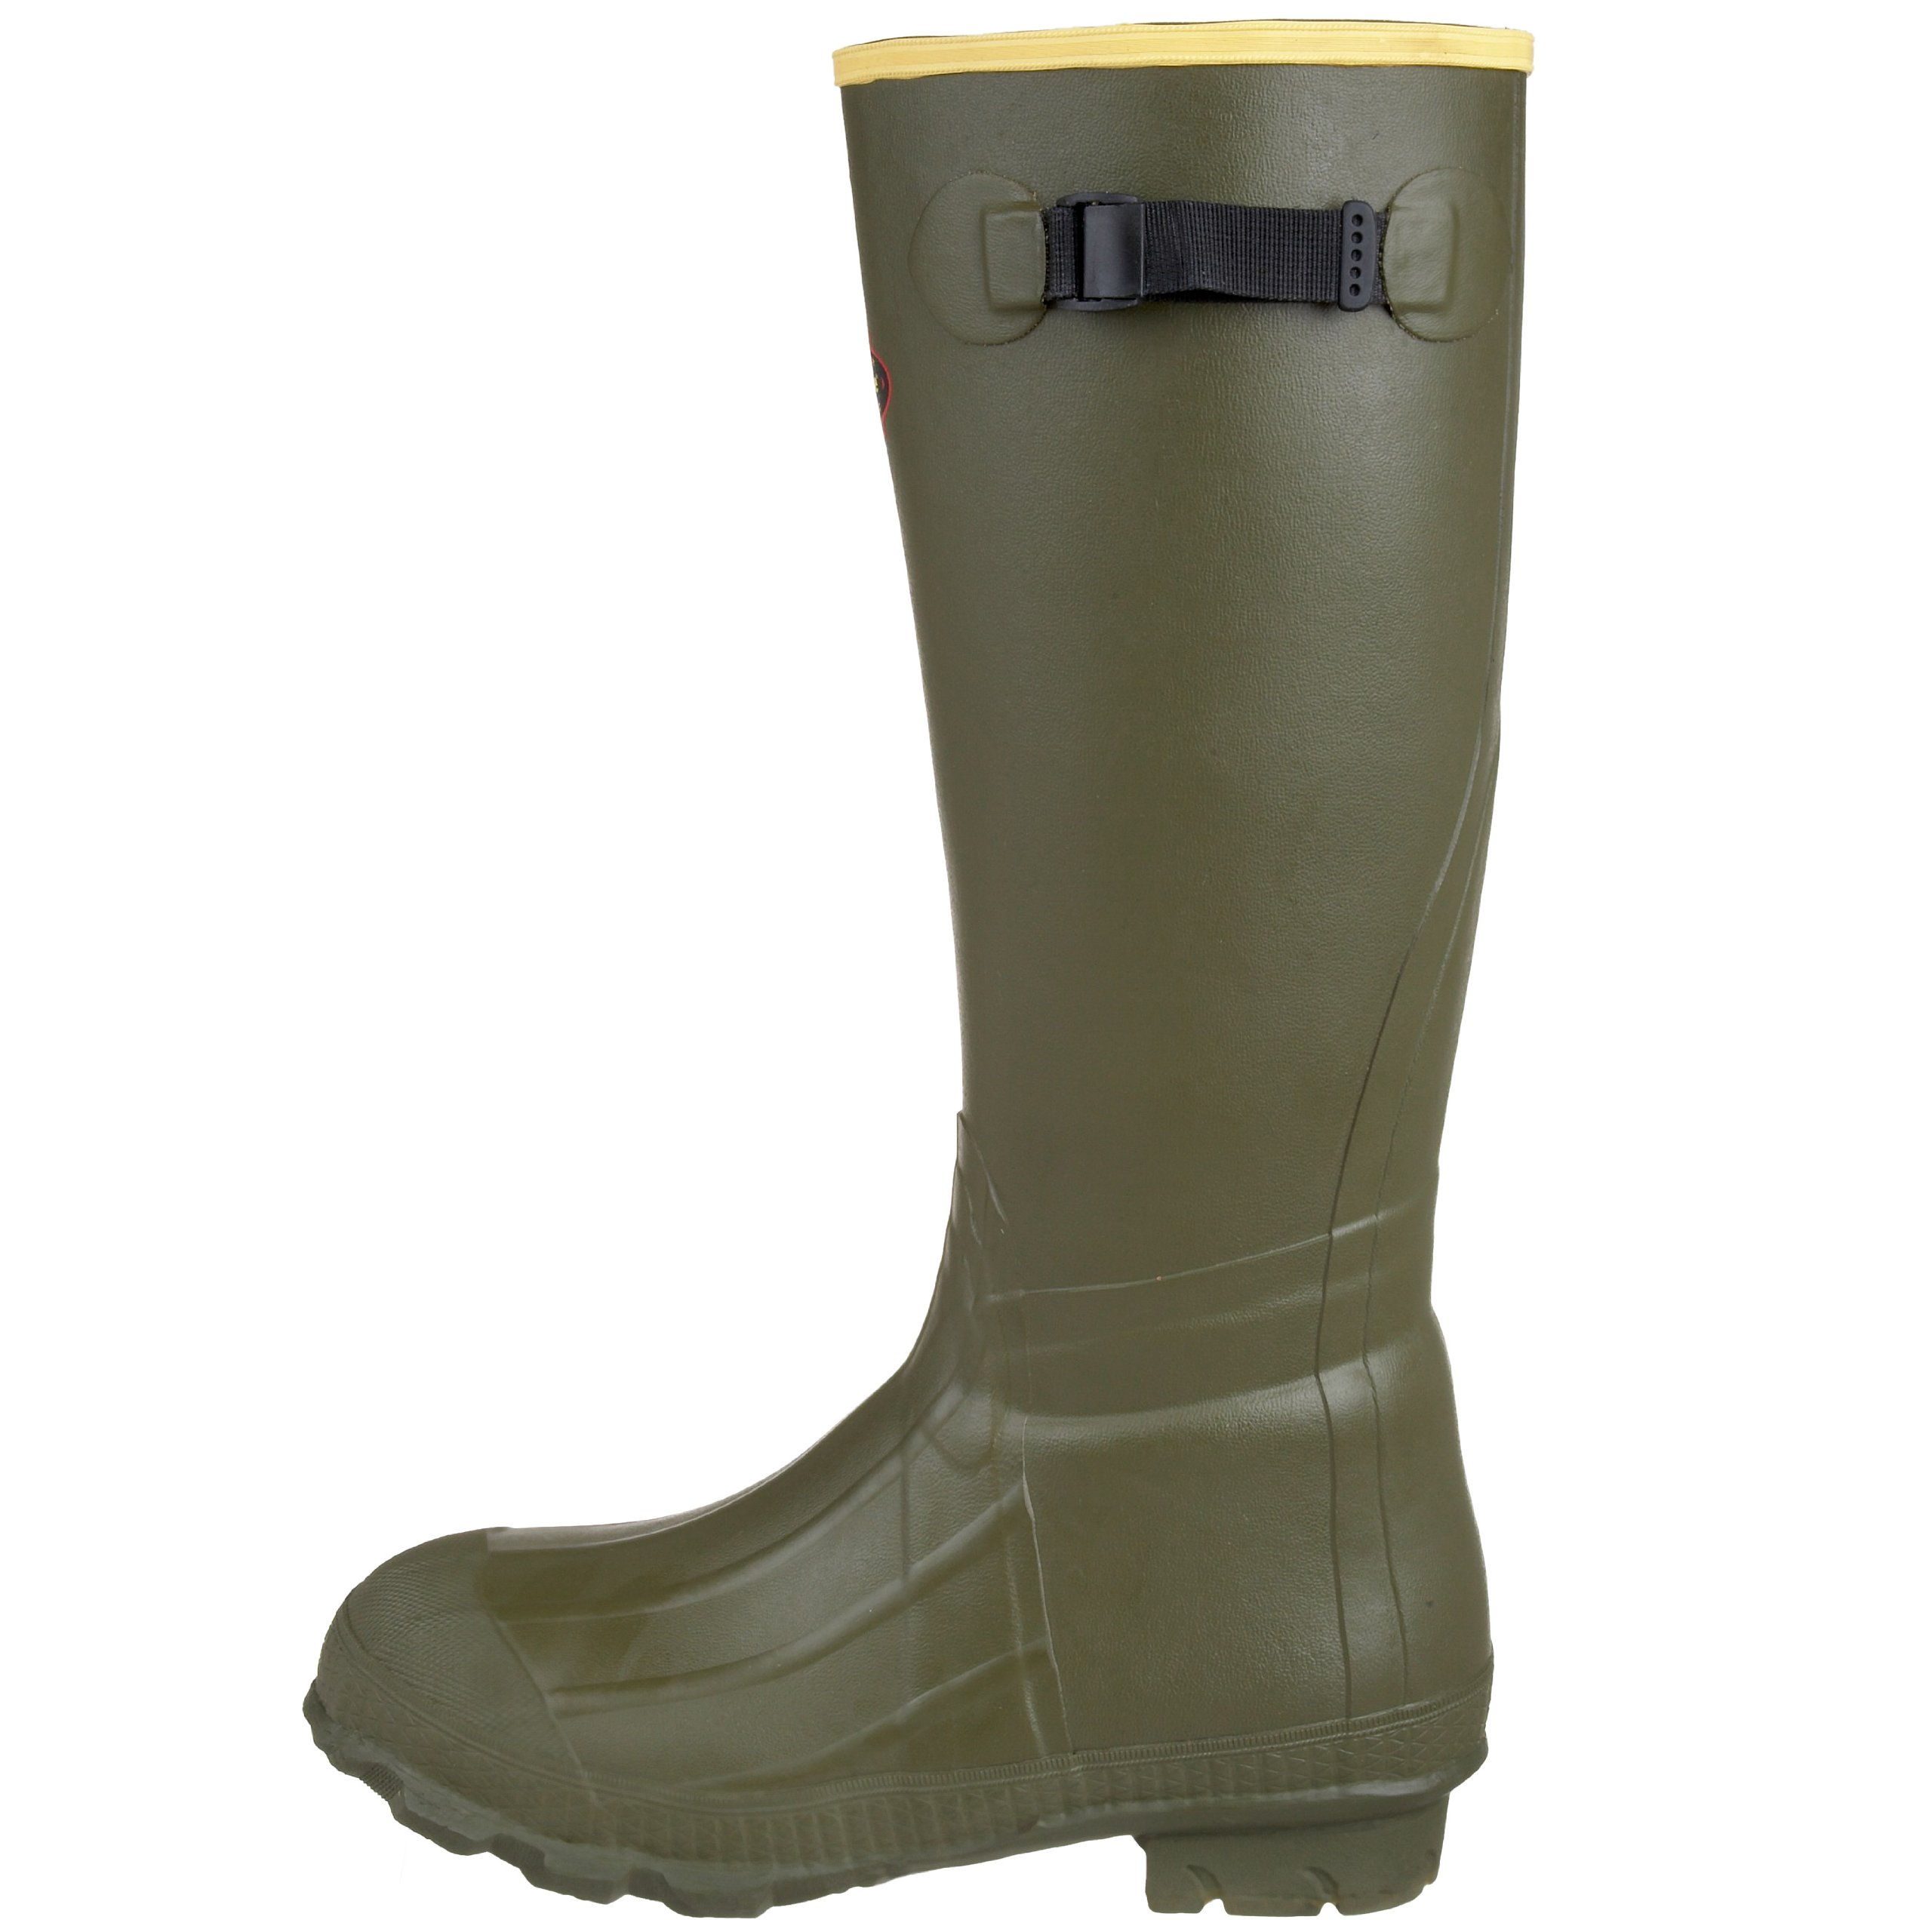 LaCrosse Men's 18'' Burly Classic Hunting Boot,OD Green,5 M US by Lacrosse (Image #5)